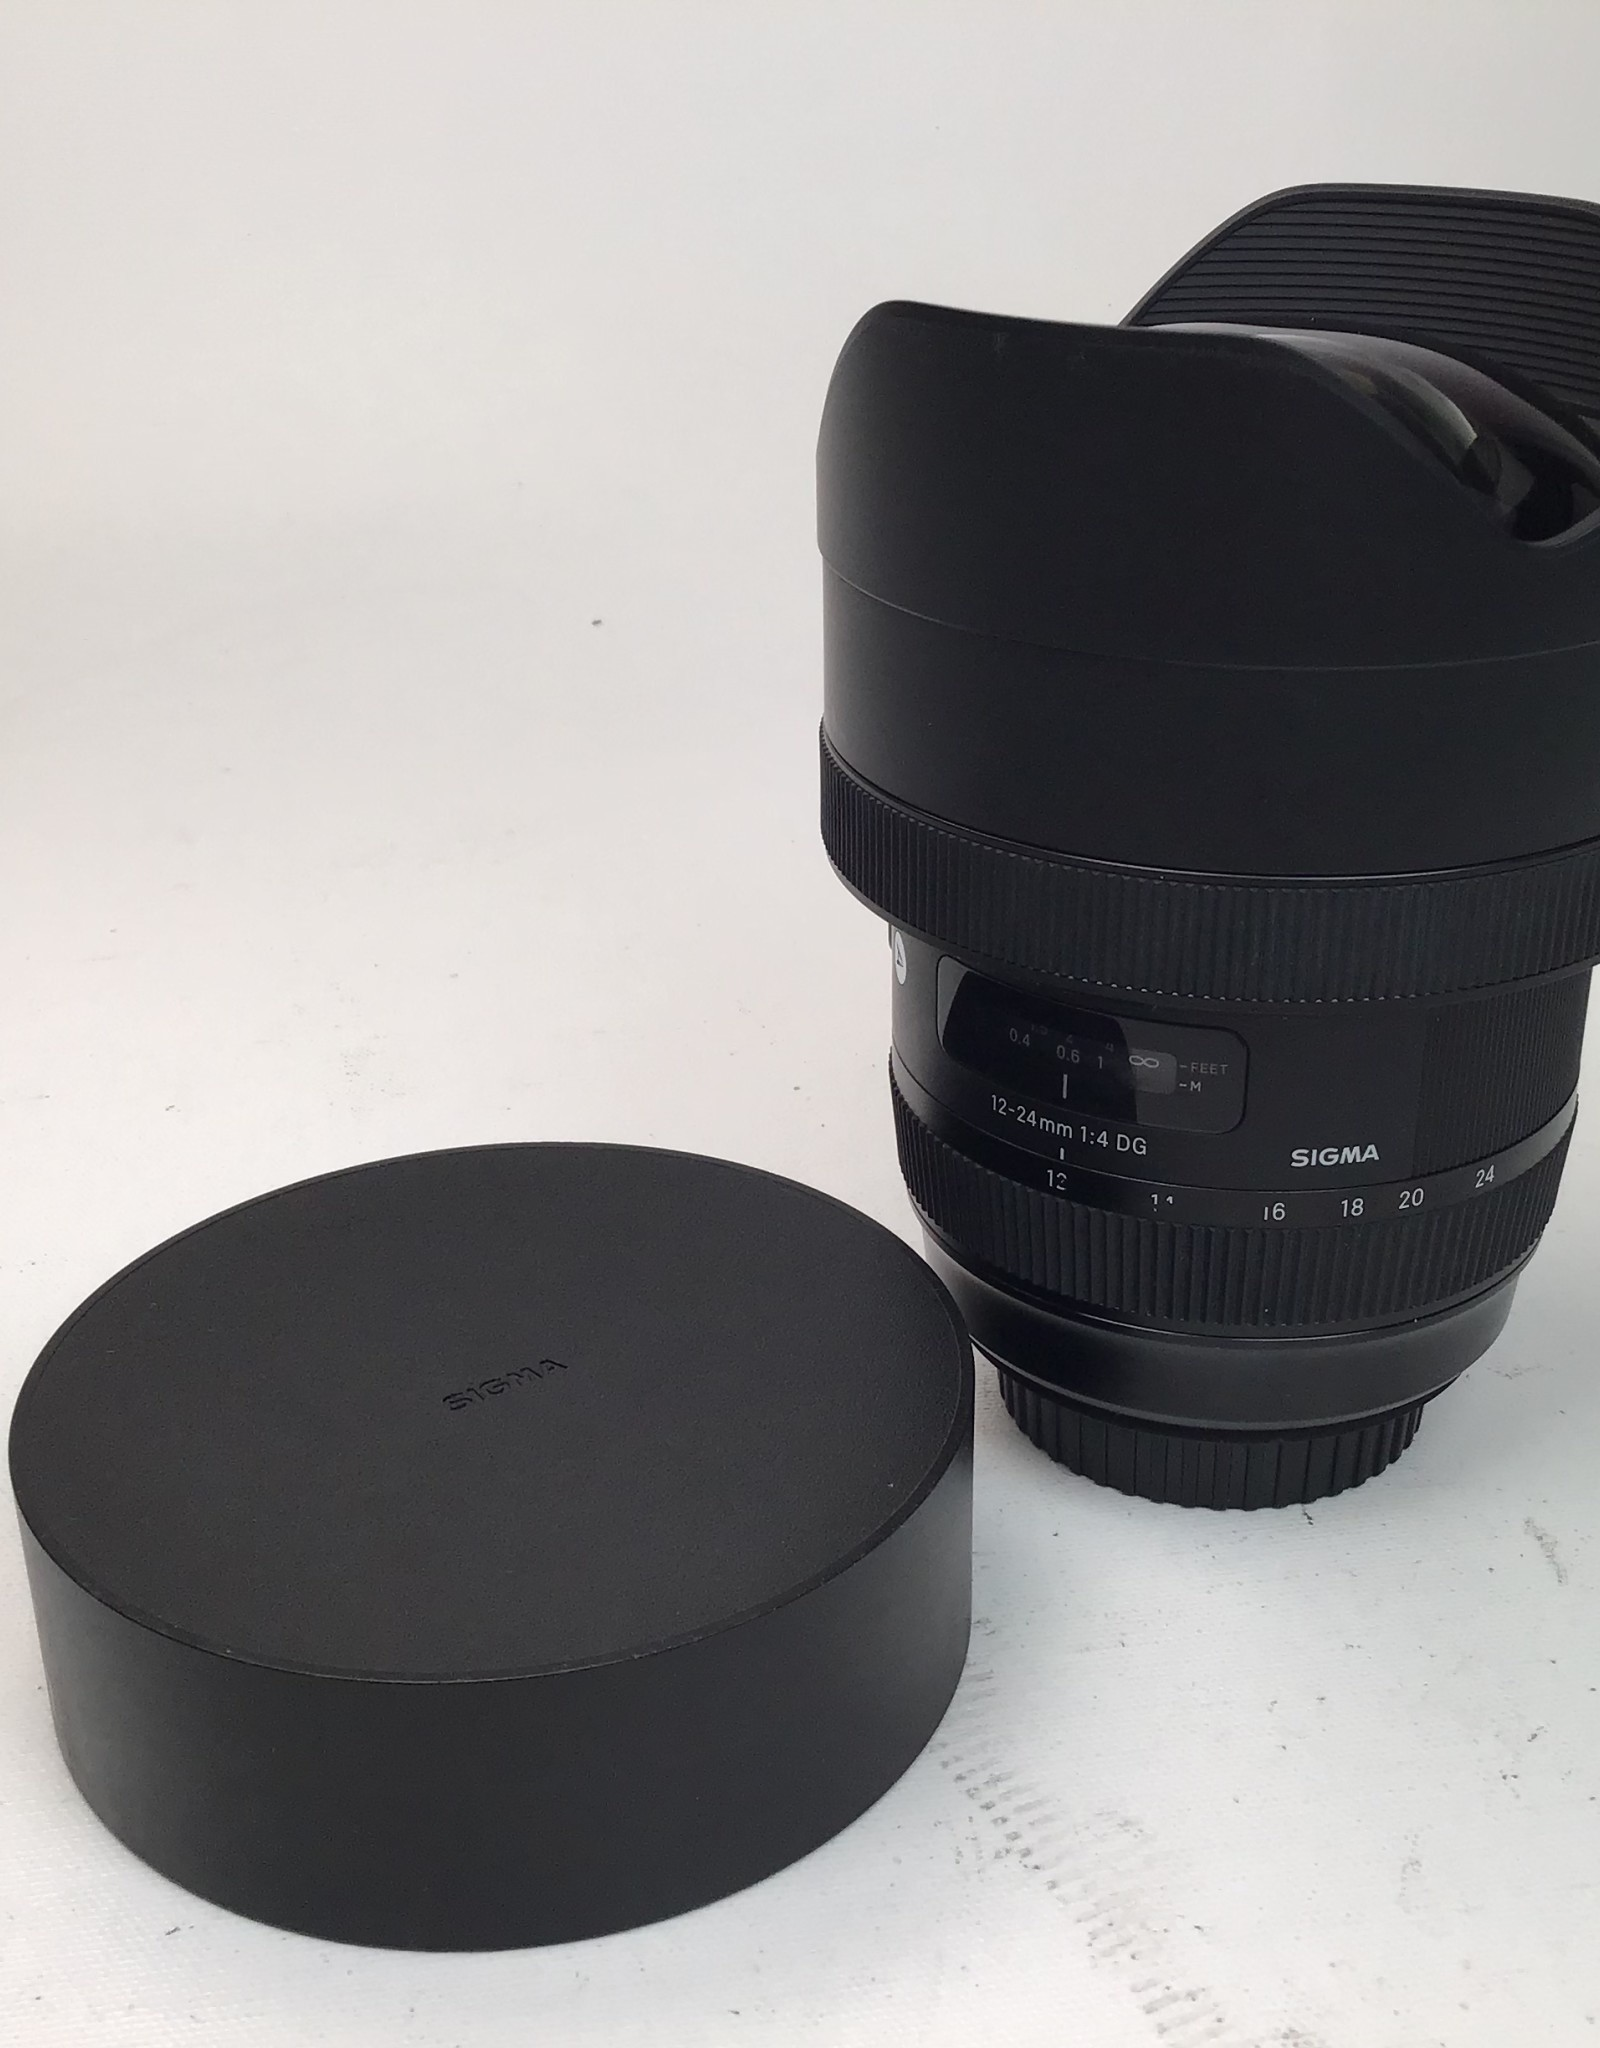 SIGMA Sigma 12-24mm f4 DG Art Lens for Canon Used Good